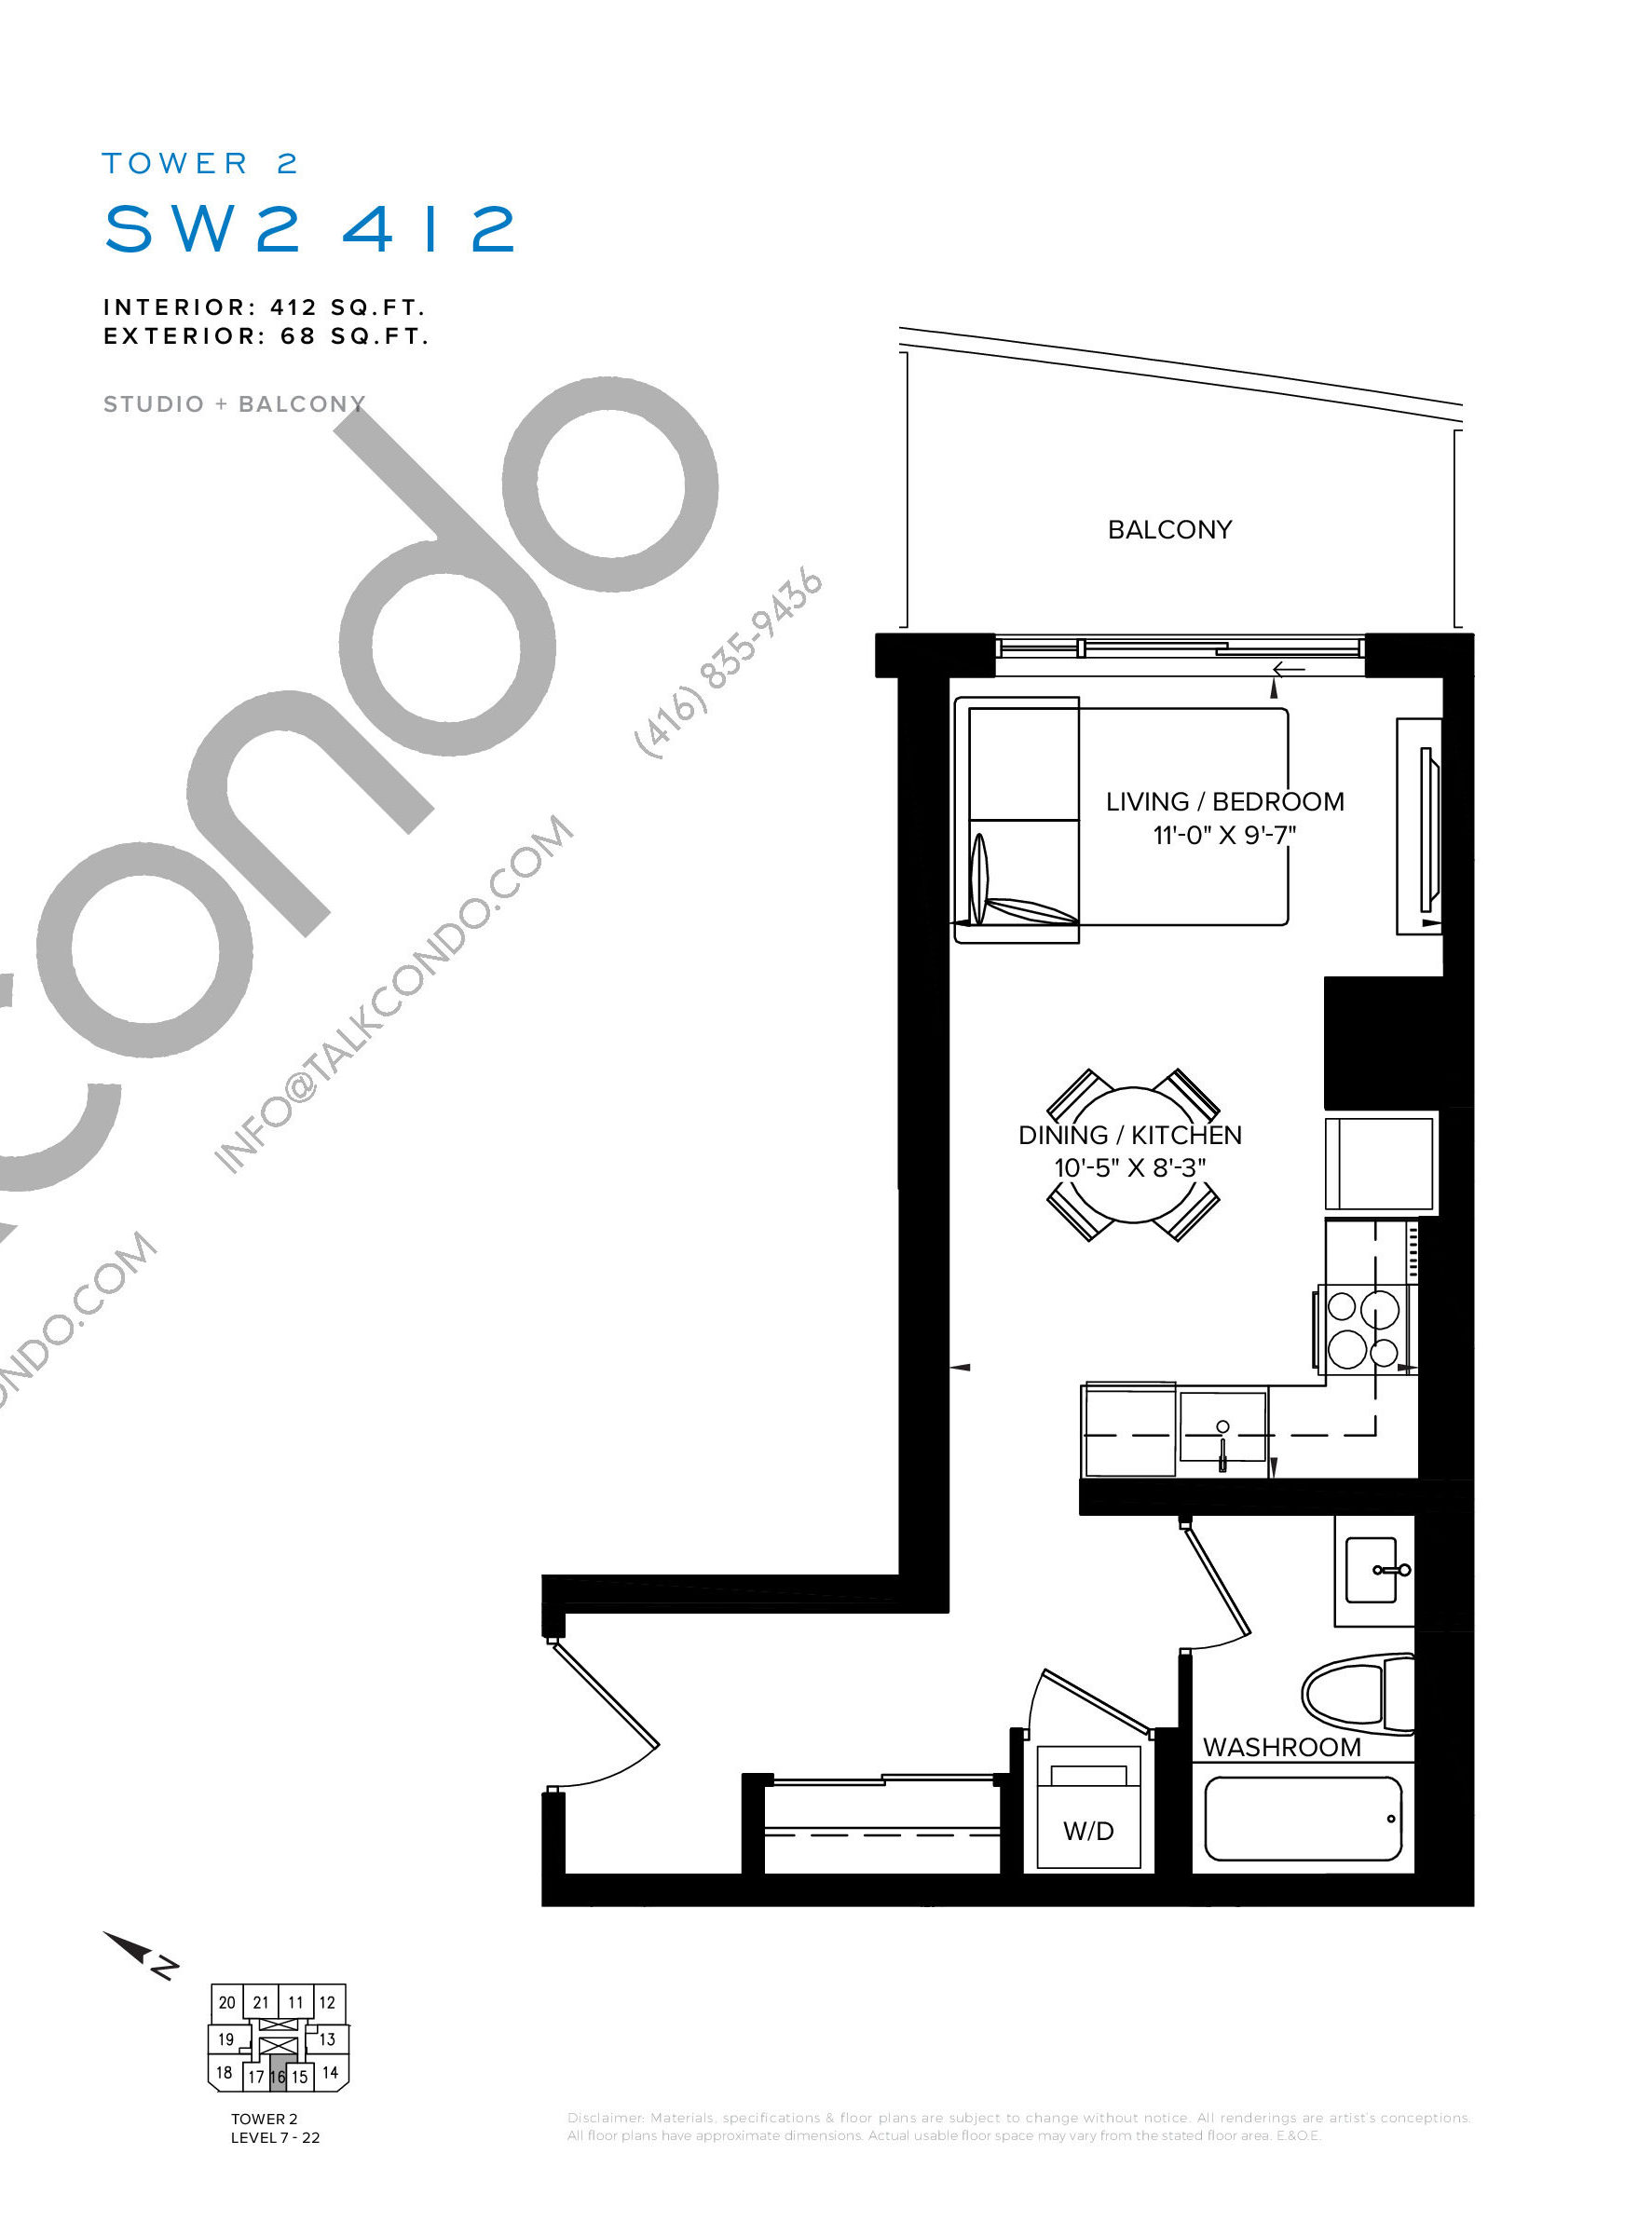 SW2 412 Floor Plan at SXSW Tower 2 Condos (SXSW2) - 412 sq.ft